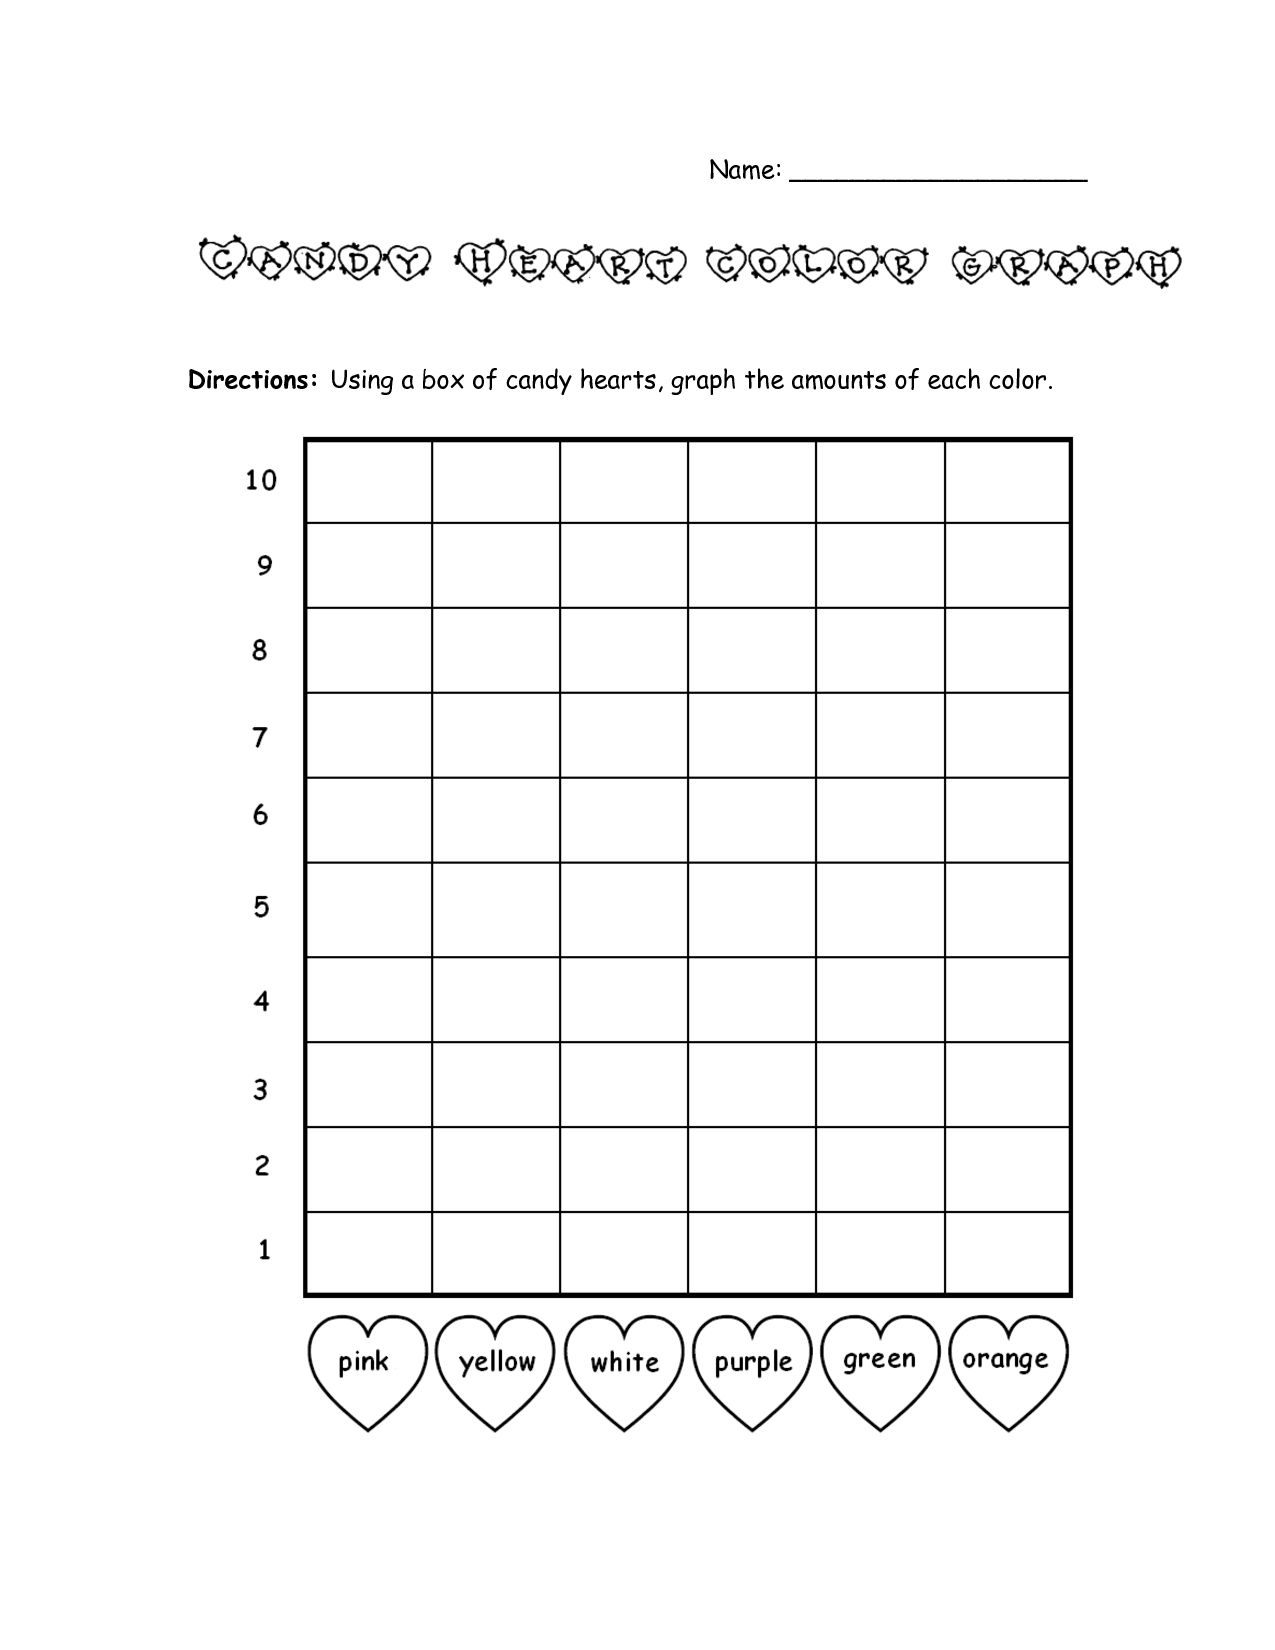 bar graph template valentines day | candy heart color graph